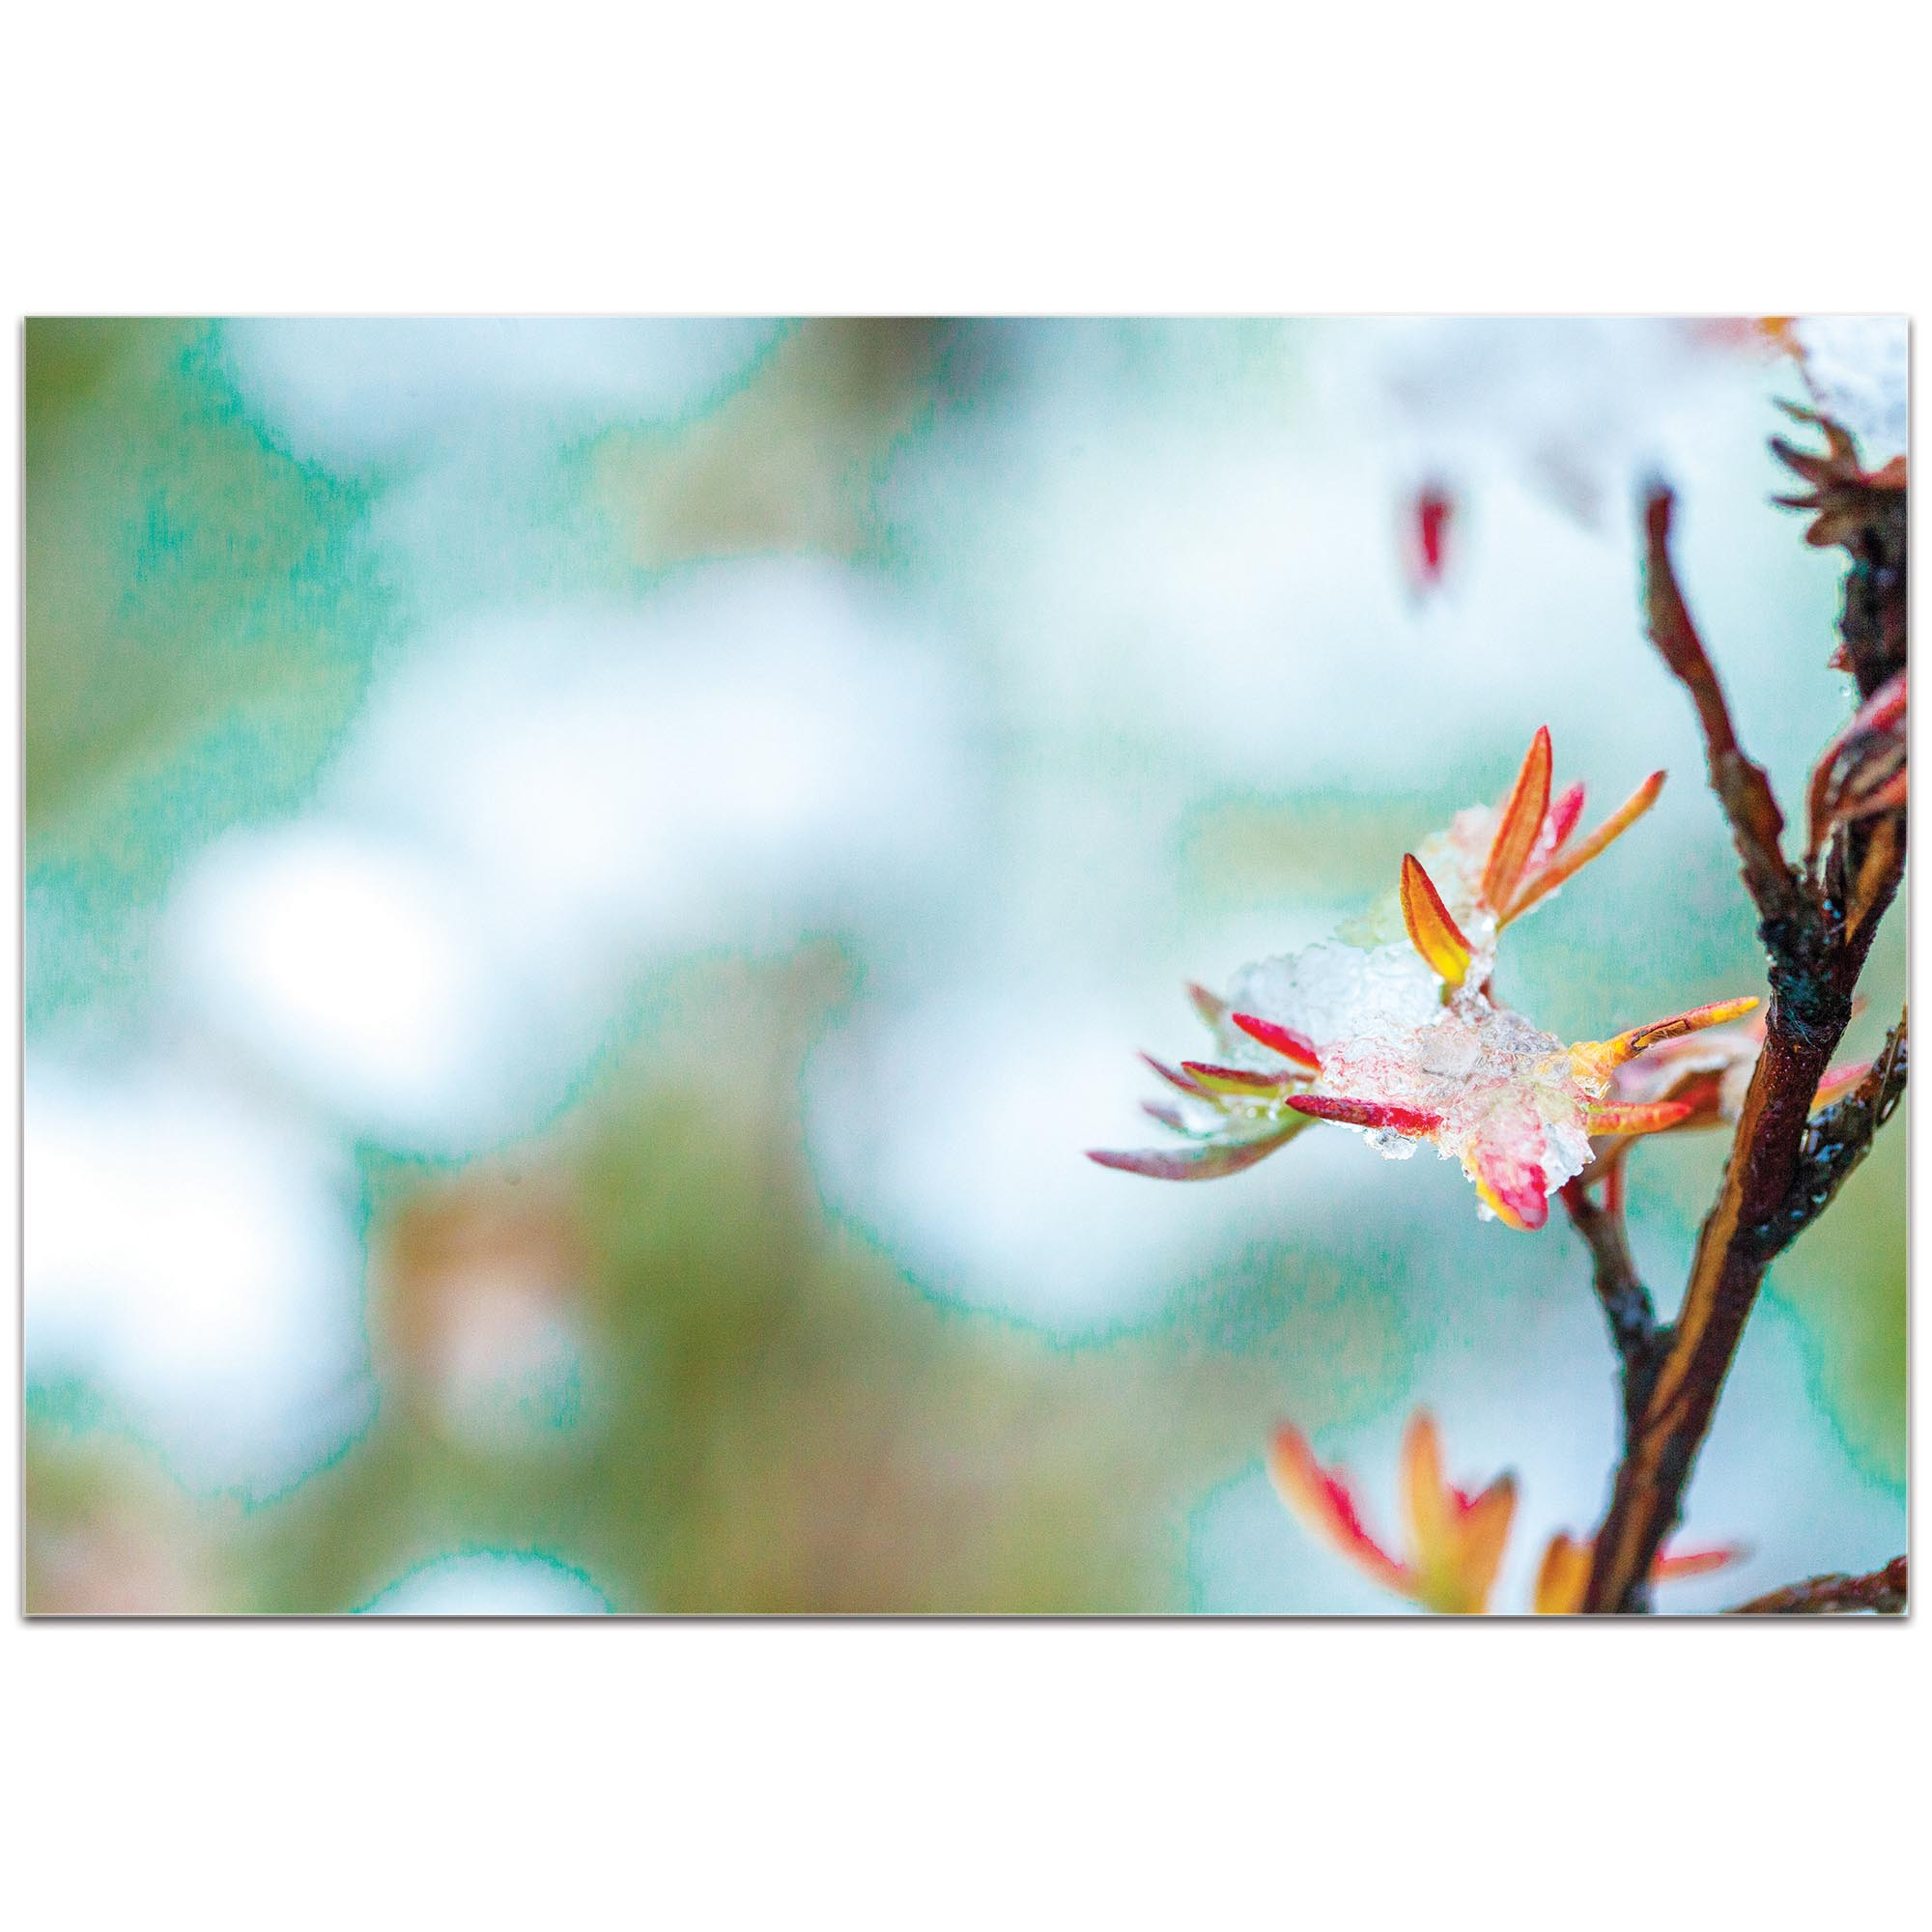 Nature Photography 'Icy Autumn v2' - Winter Blossom Art on Metal or Plexiglass - Image 2